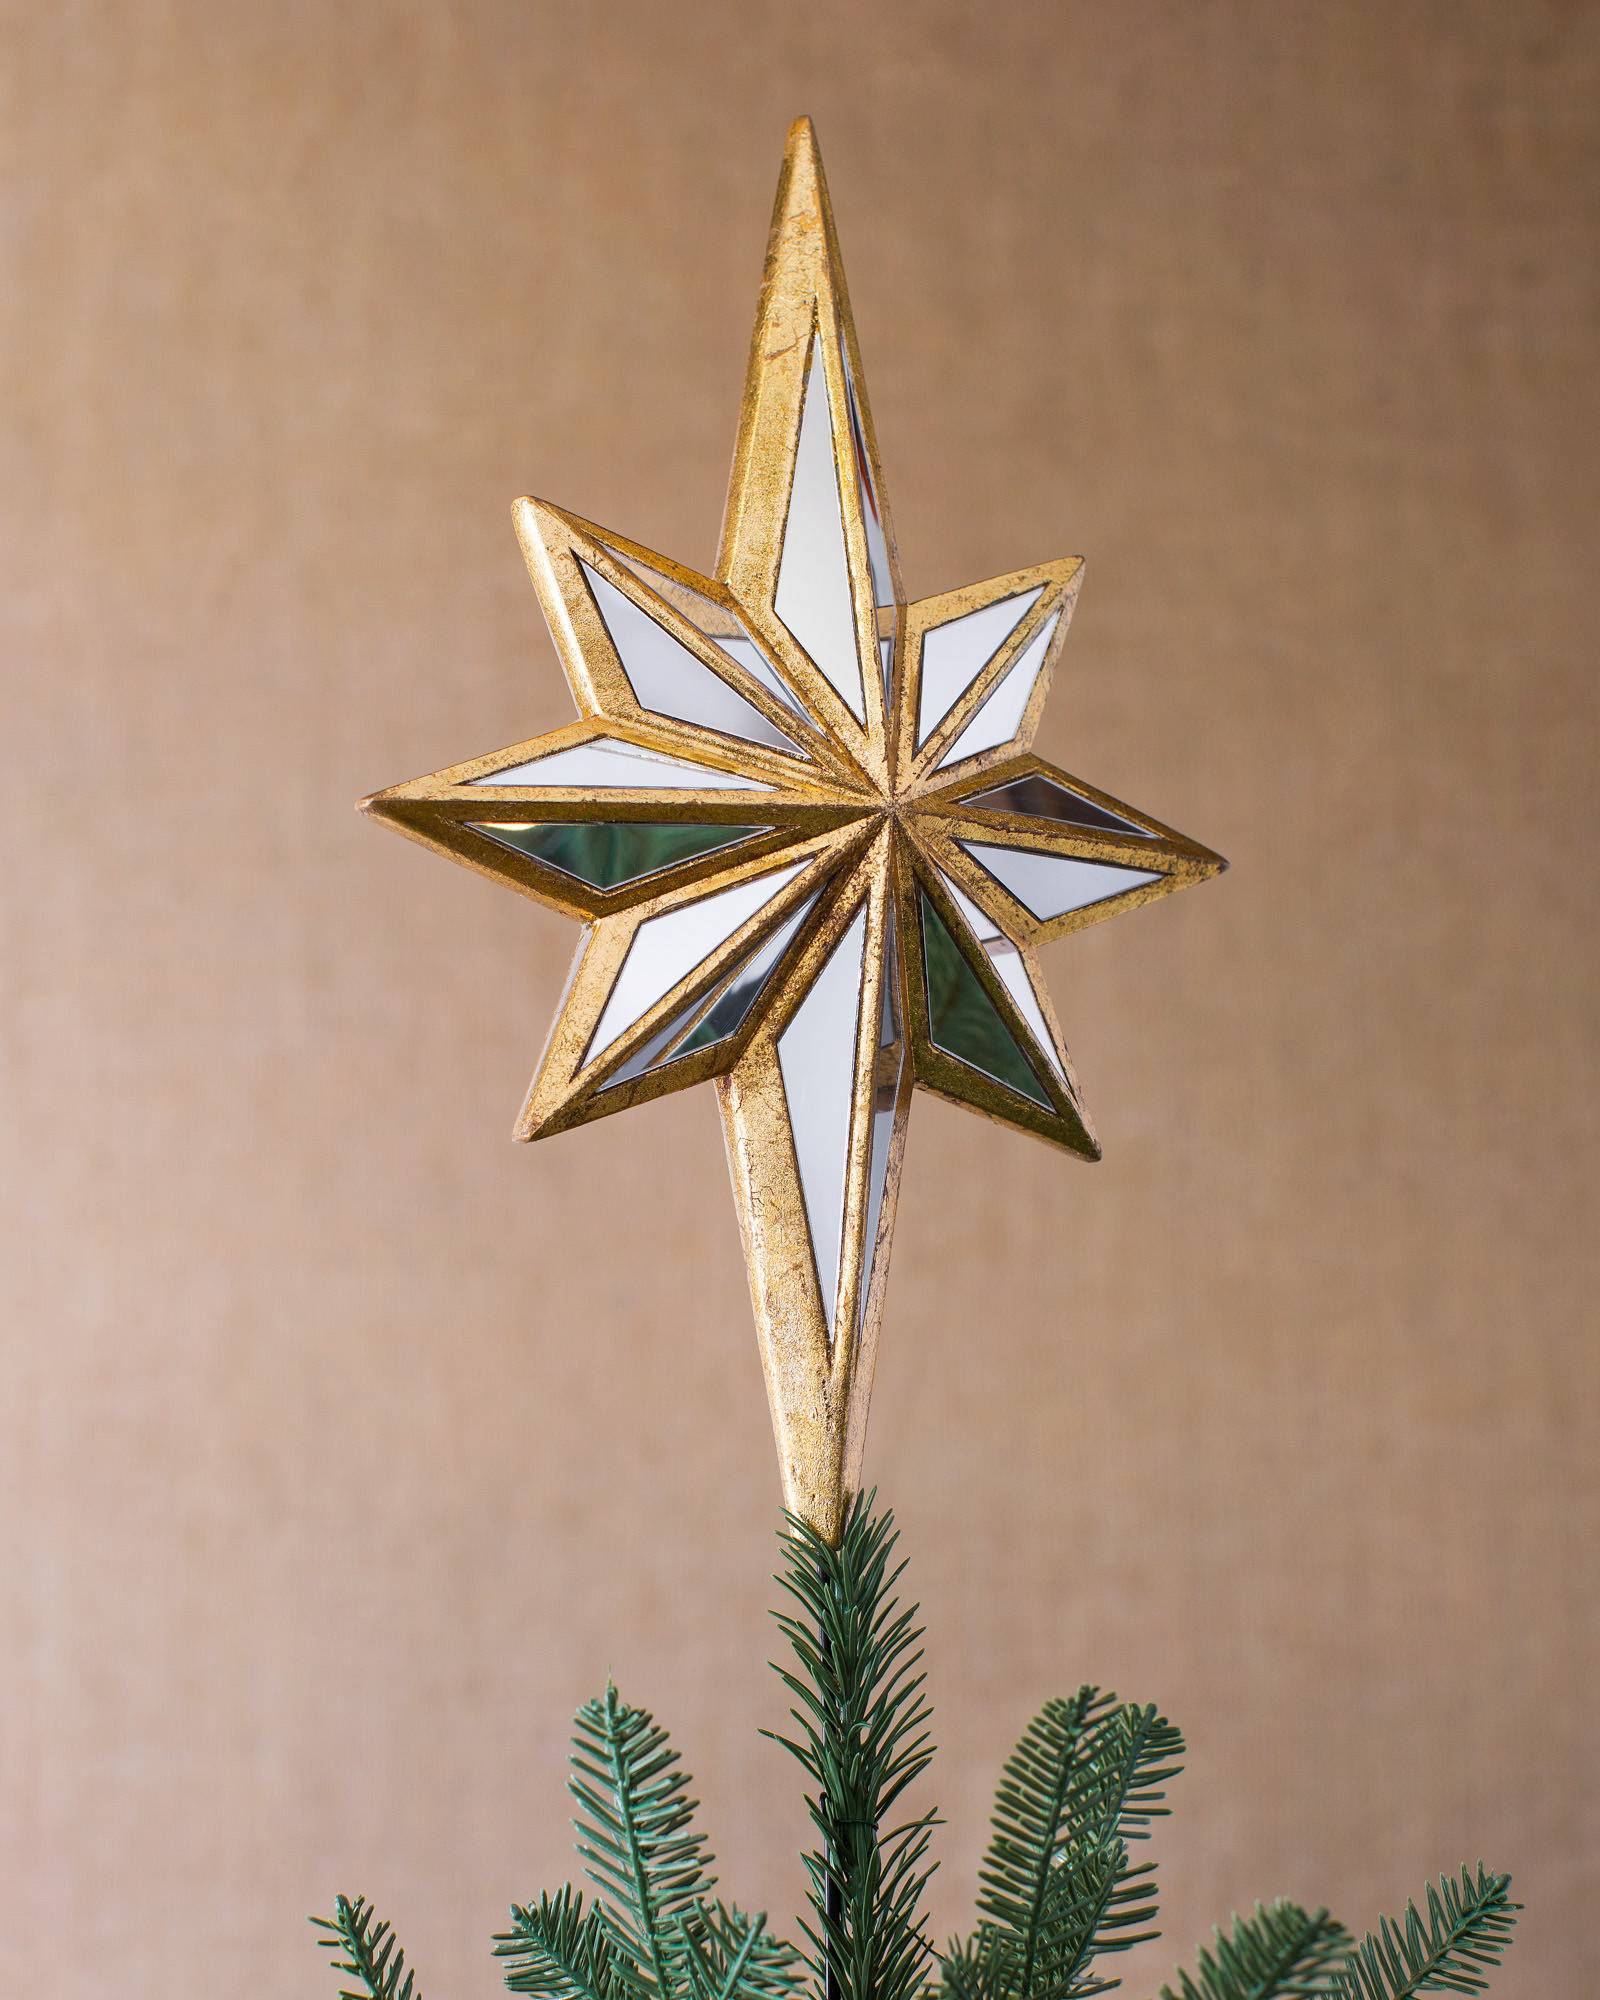 DOUBLE-SIDED MIRRORED STAR TREE TOPPER